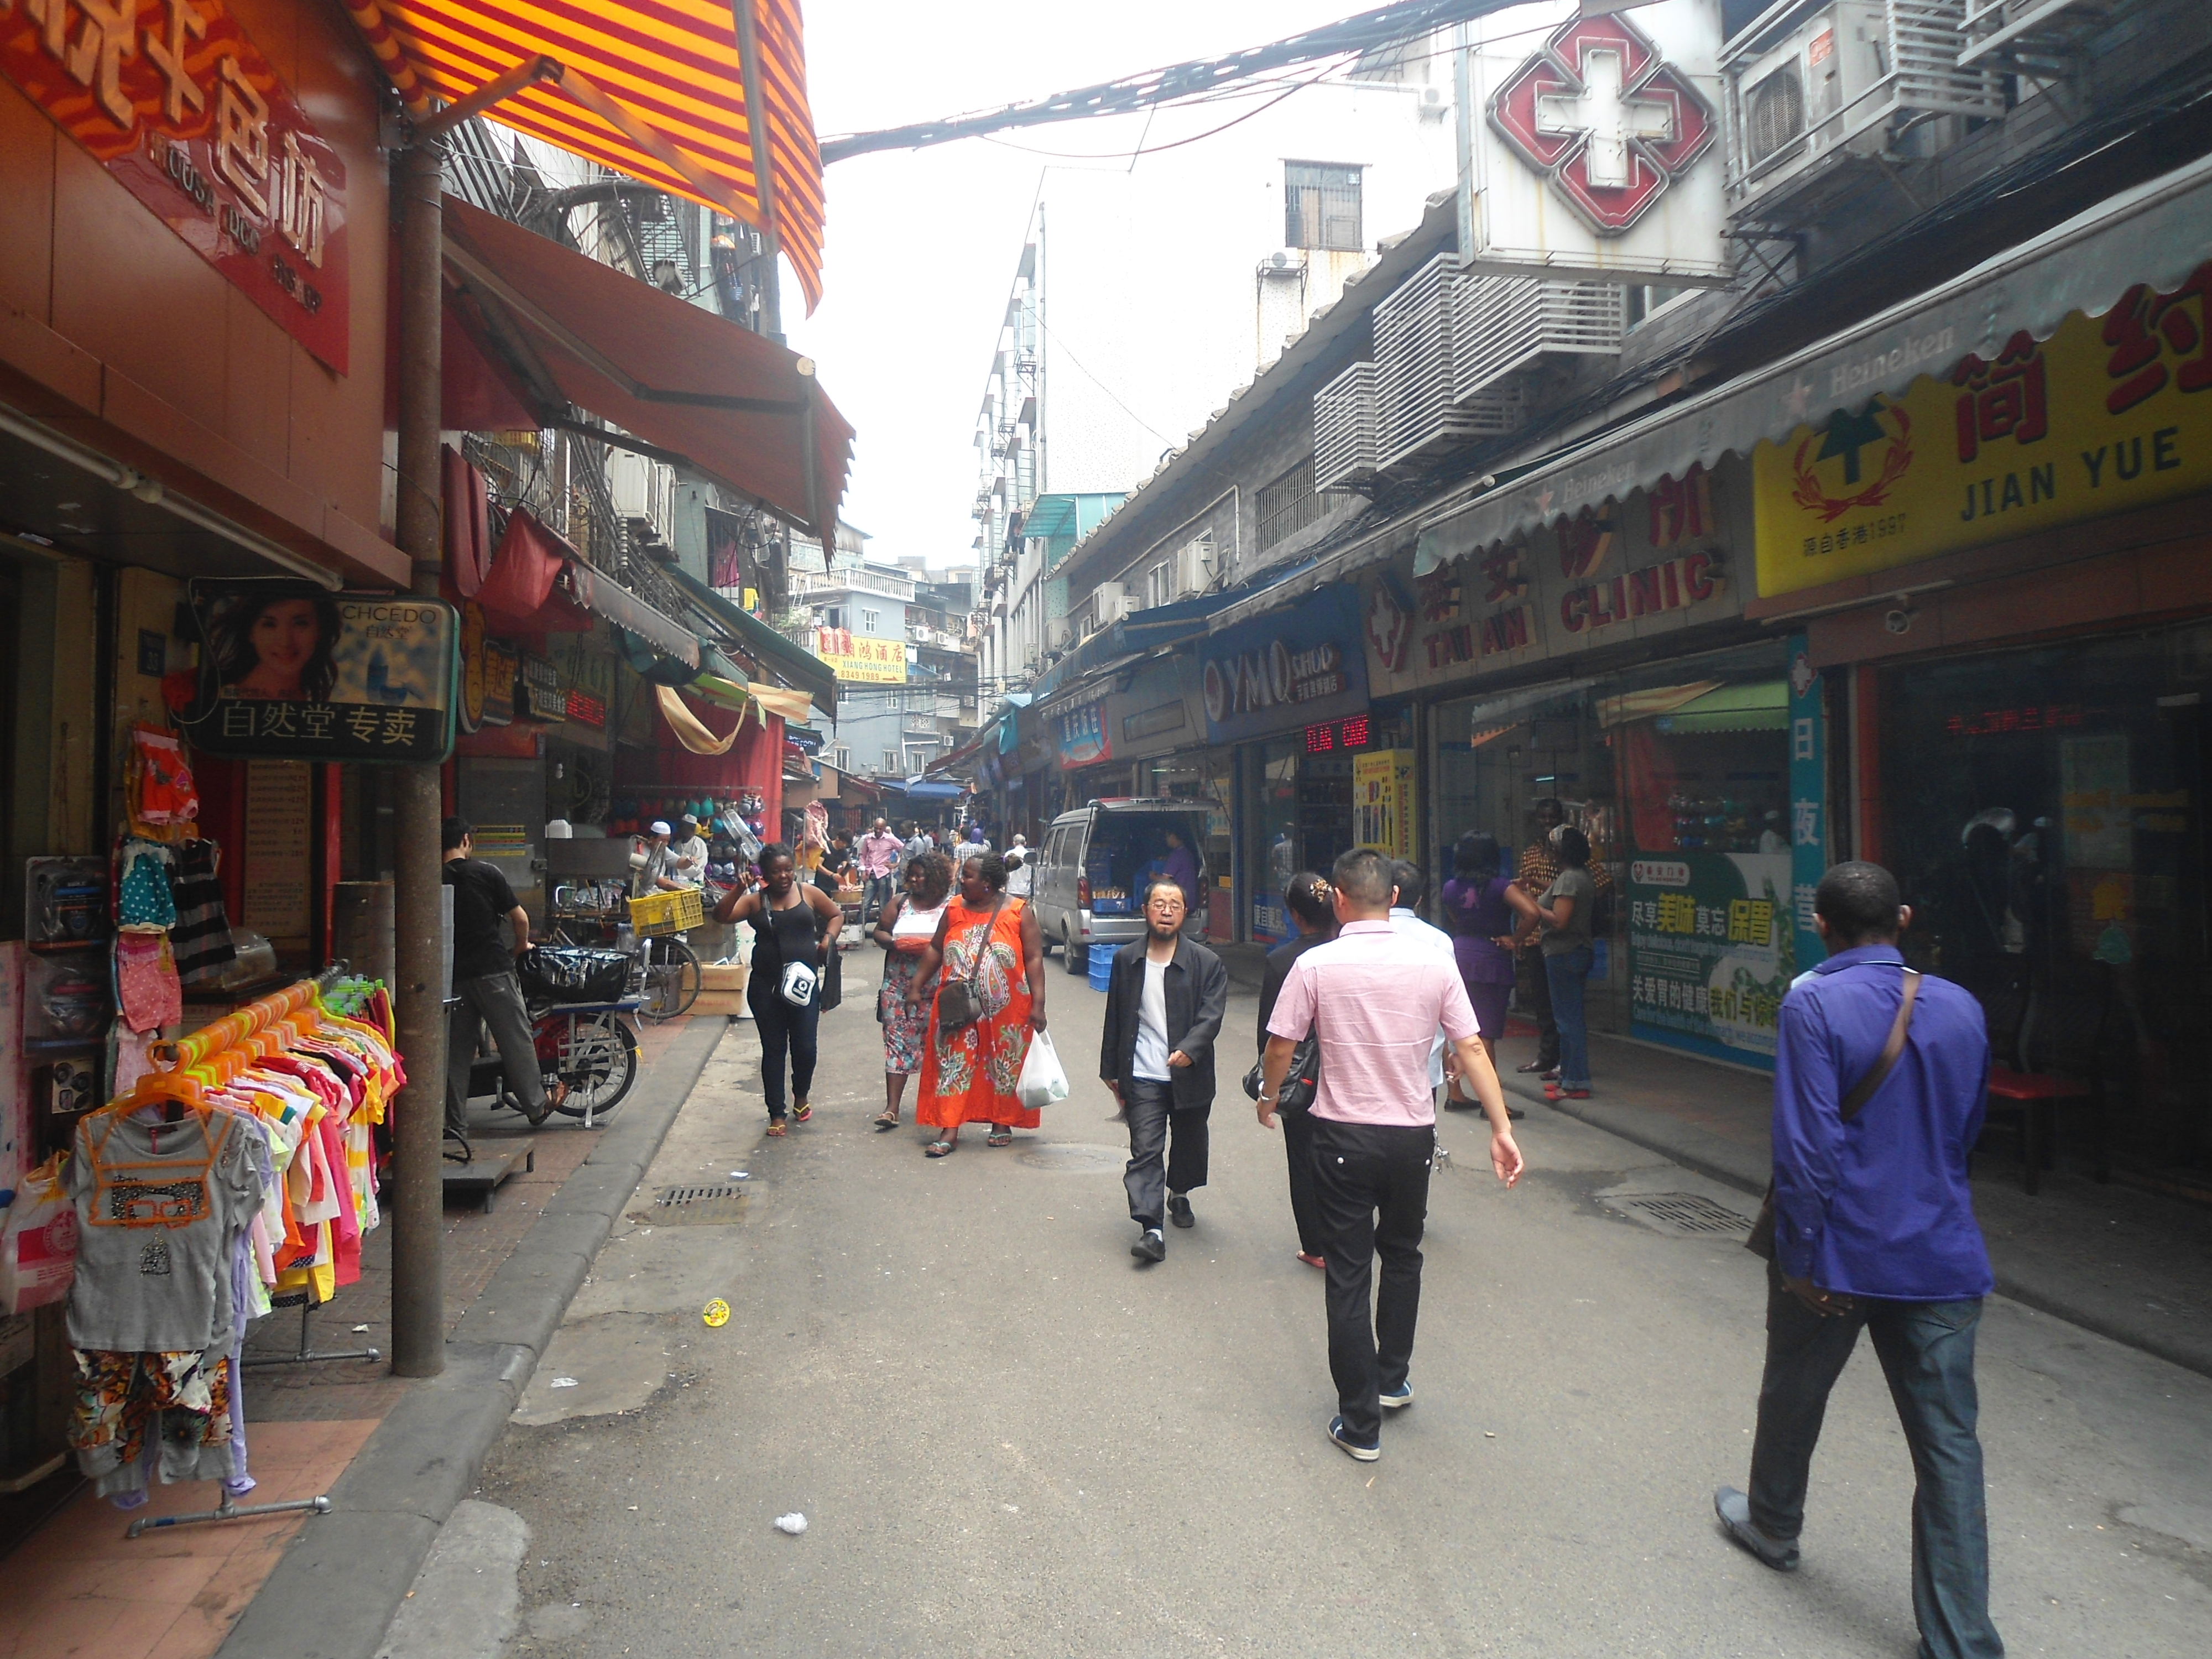 African area streets in Guangzhou, China